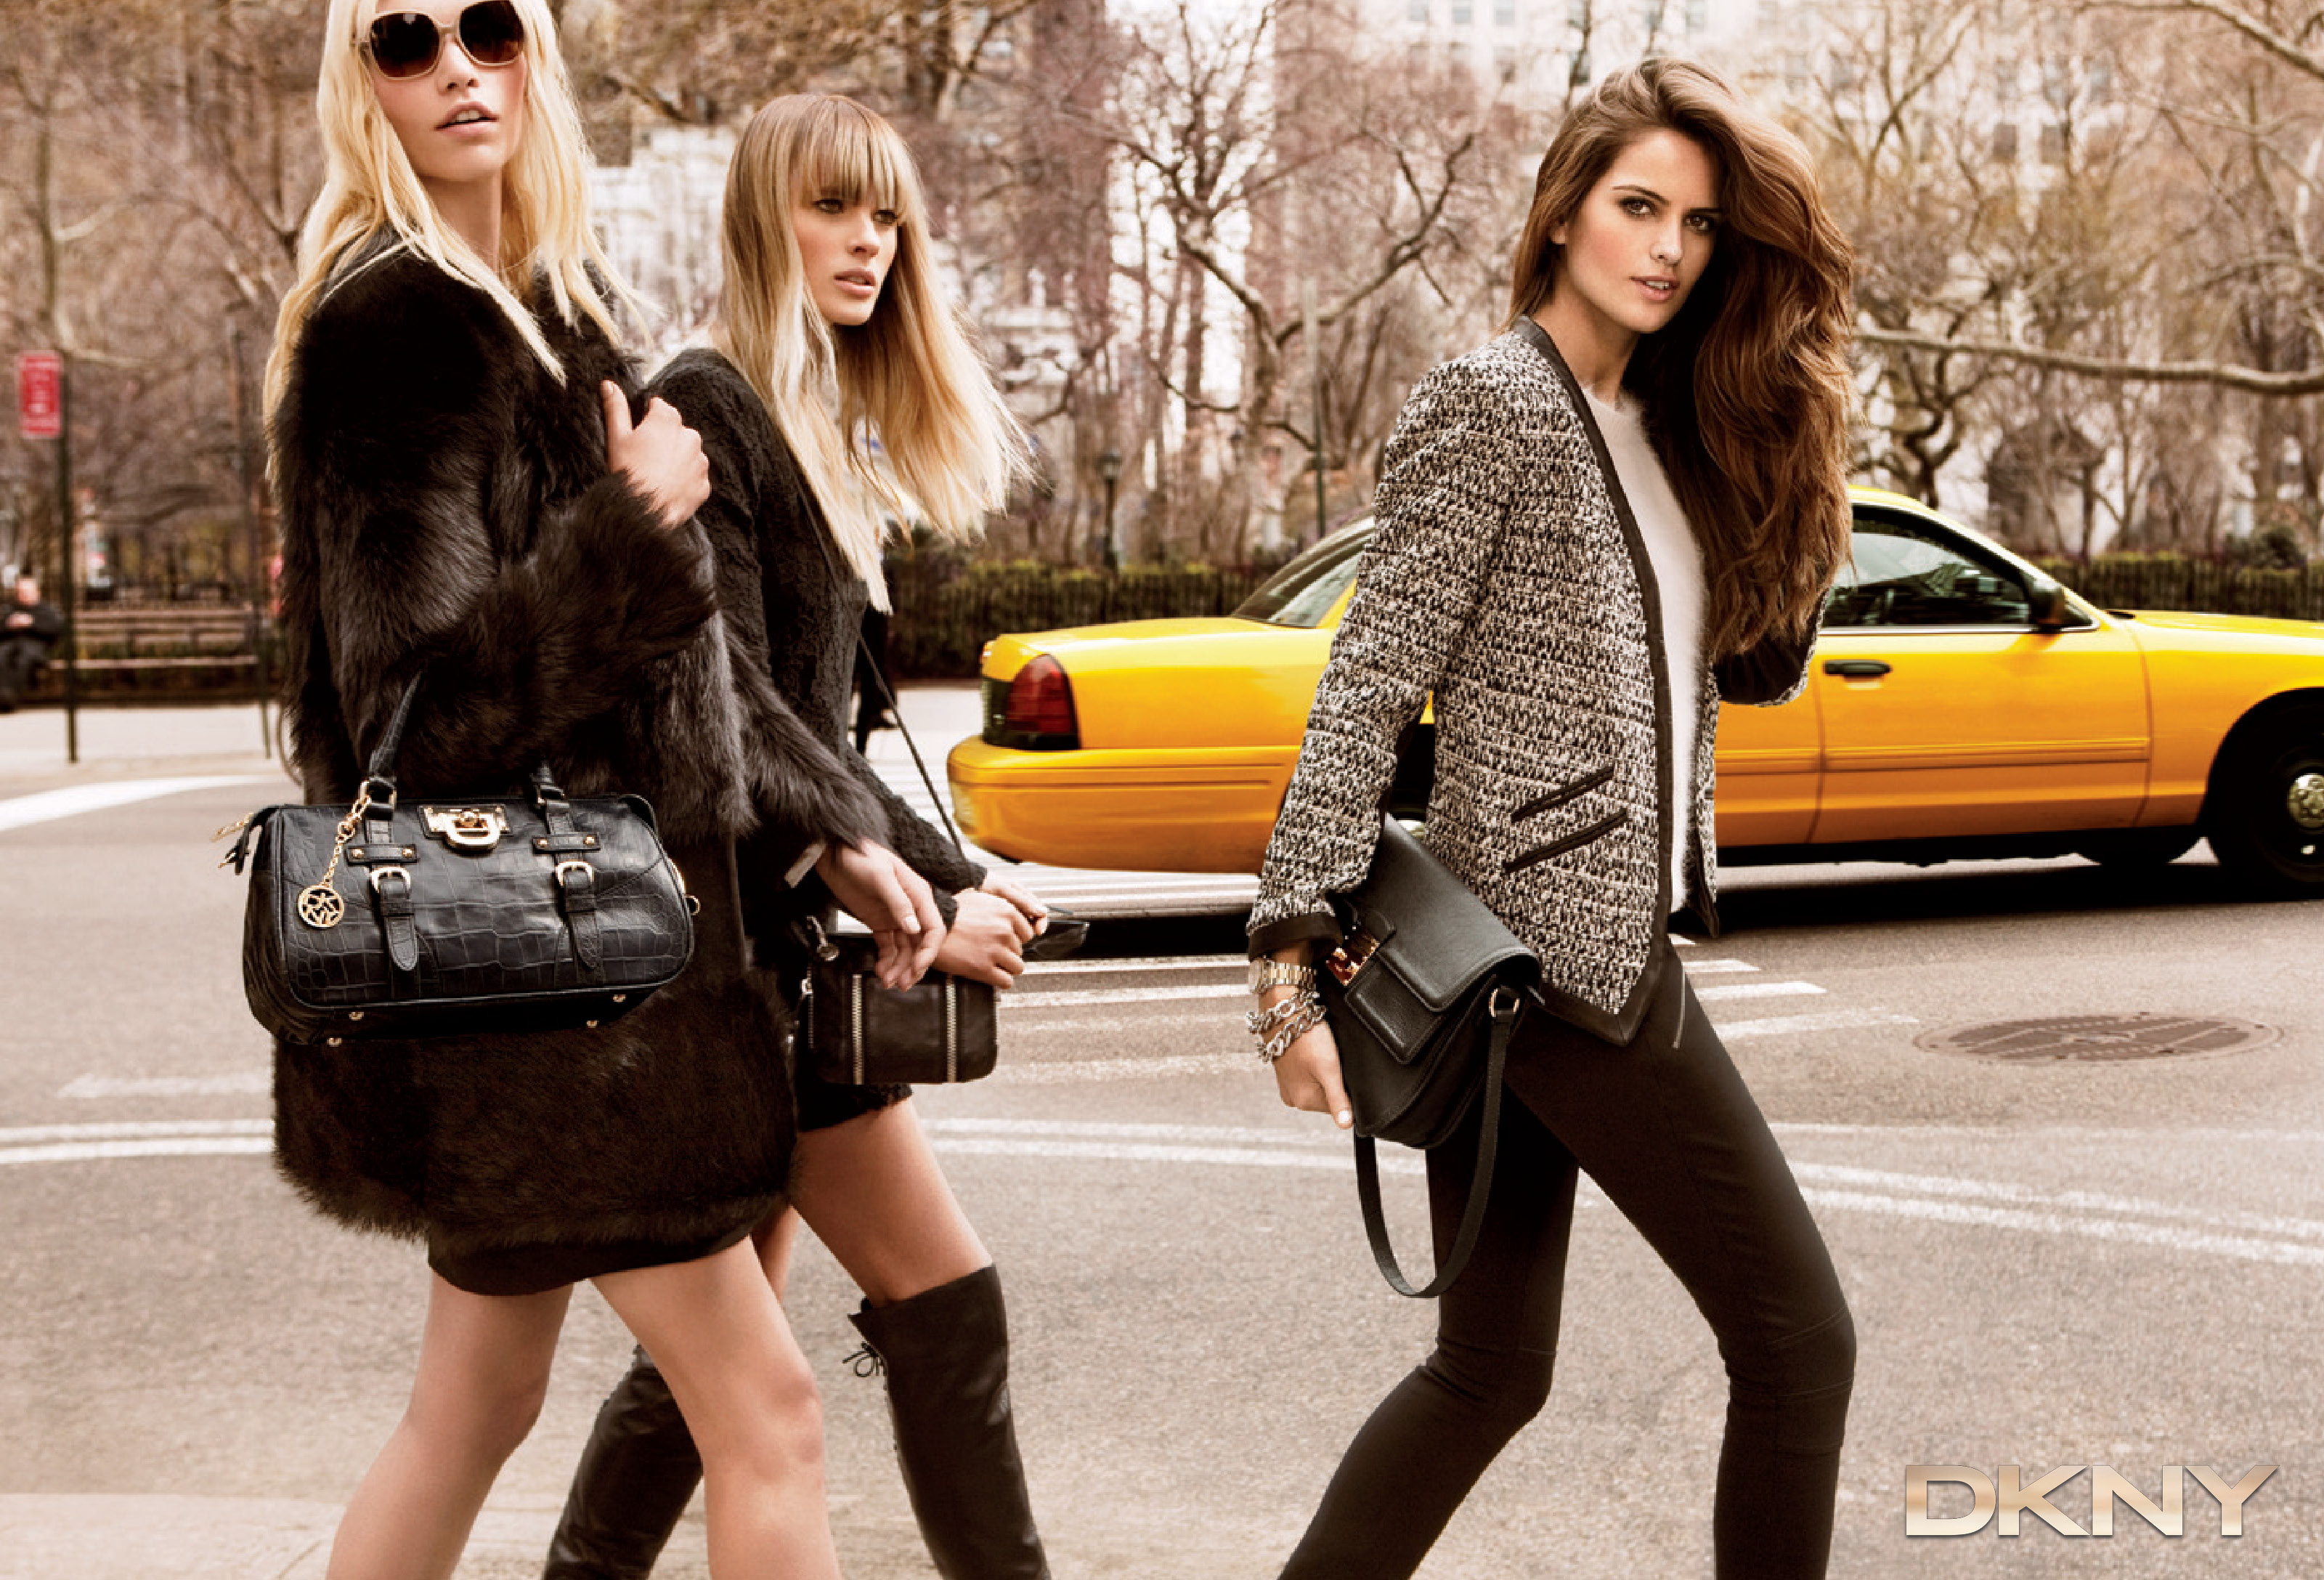 Dkny aw 11 campaign freak deluxe for New york models